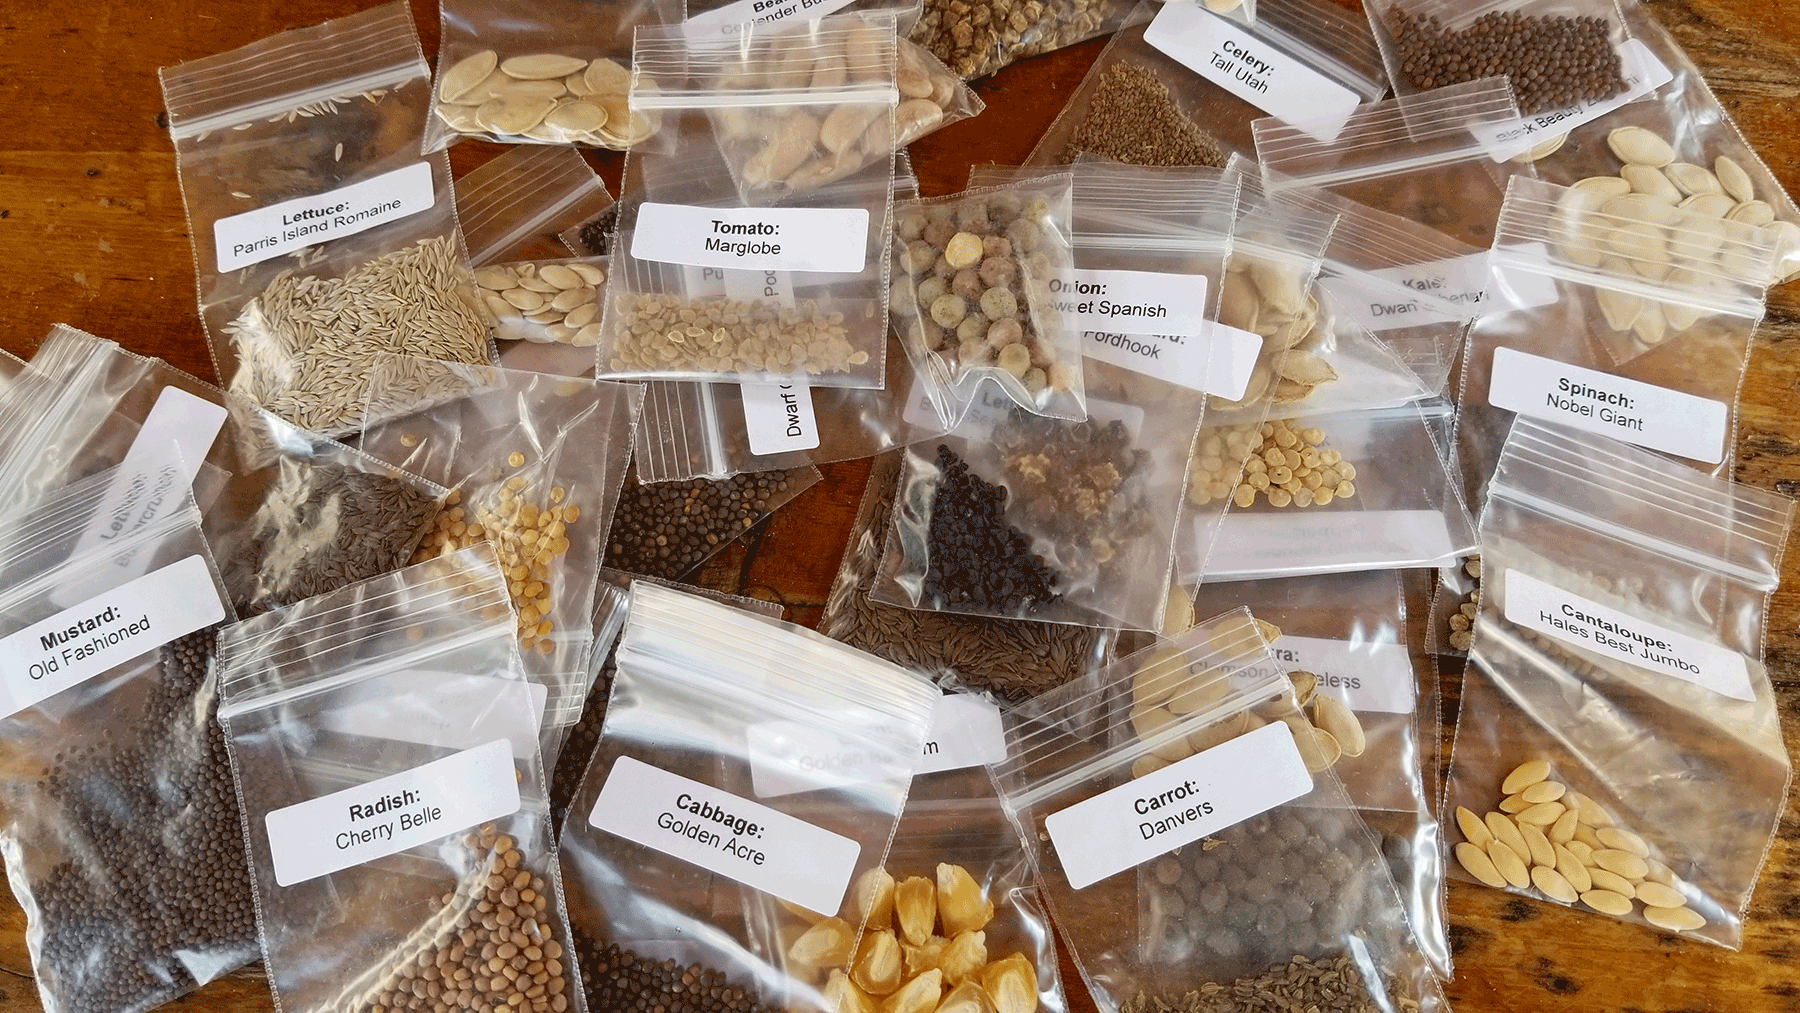 Heirloom Seeds: Are They Part Of Your Preparedness Plan?